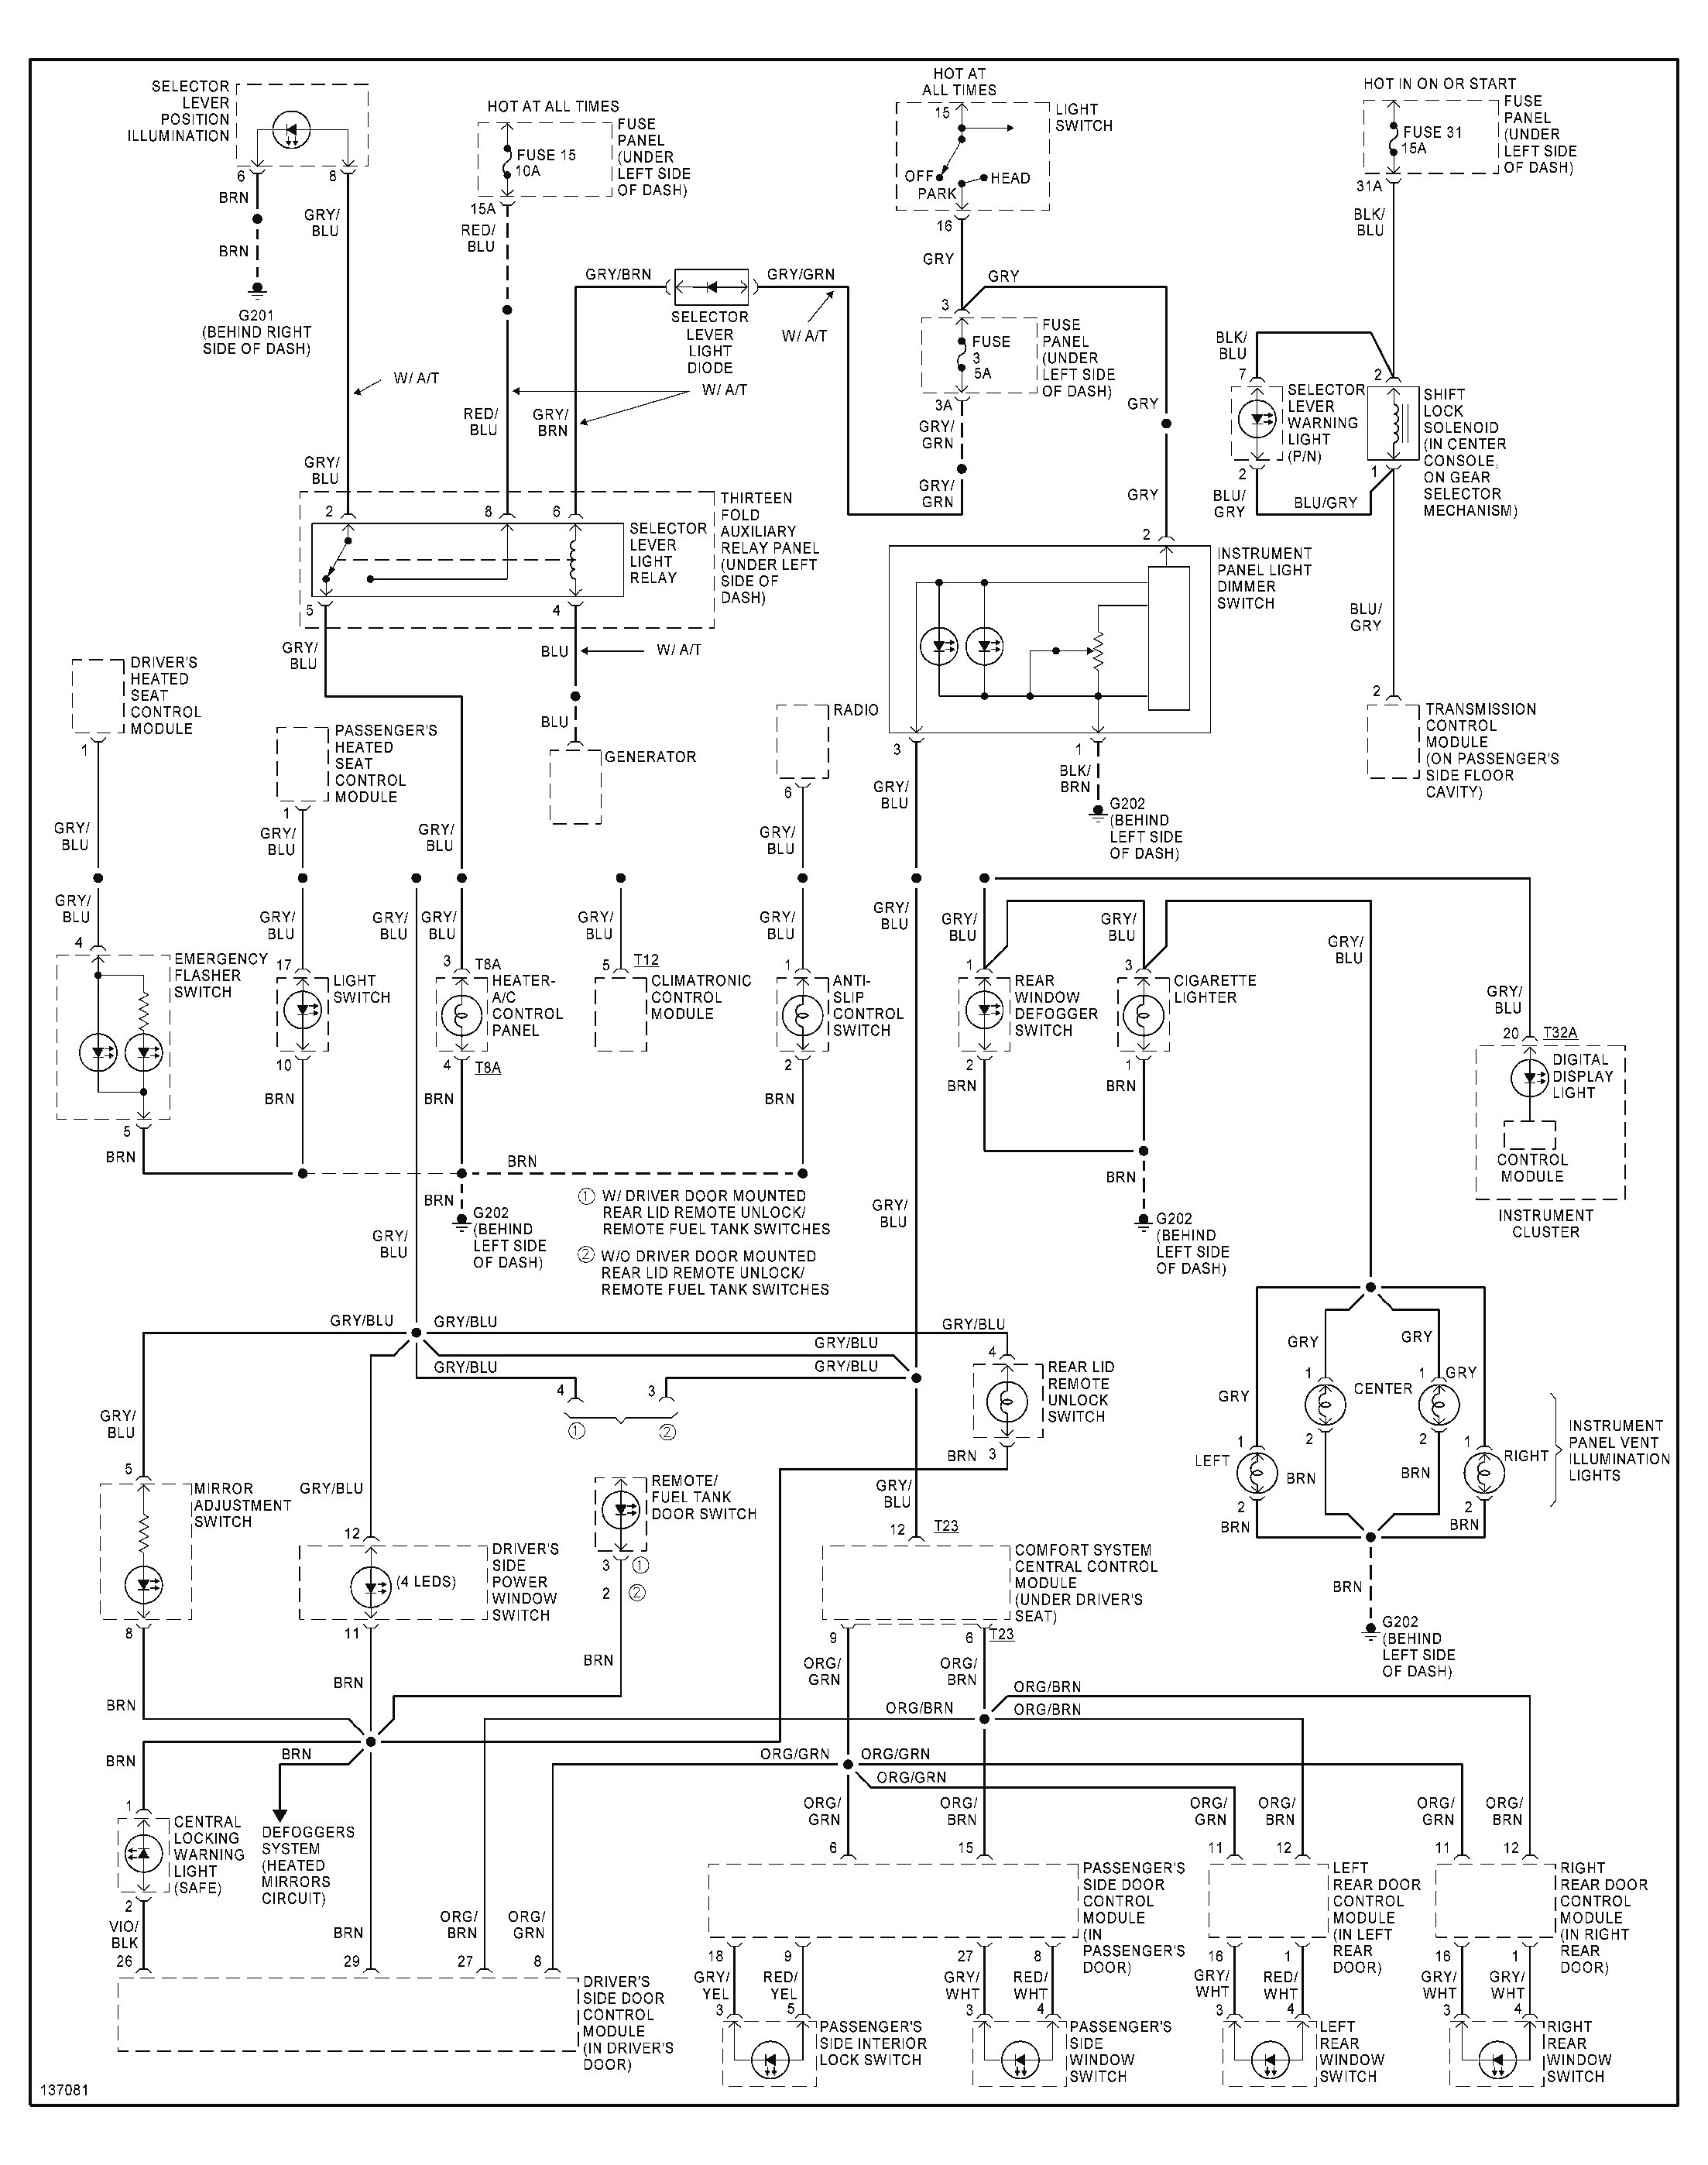 2001 Montero Brake System Wiring Diagram Opinions About Impulse Controller 89 Mitsubishi U2022 Rh Hunzadesign Co Uk Even